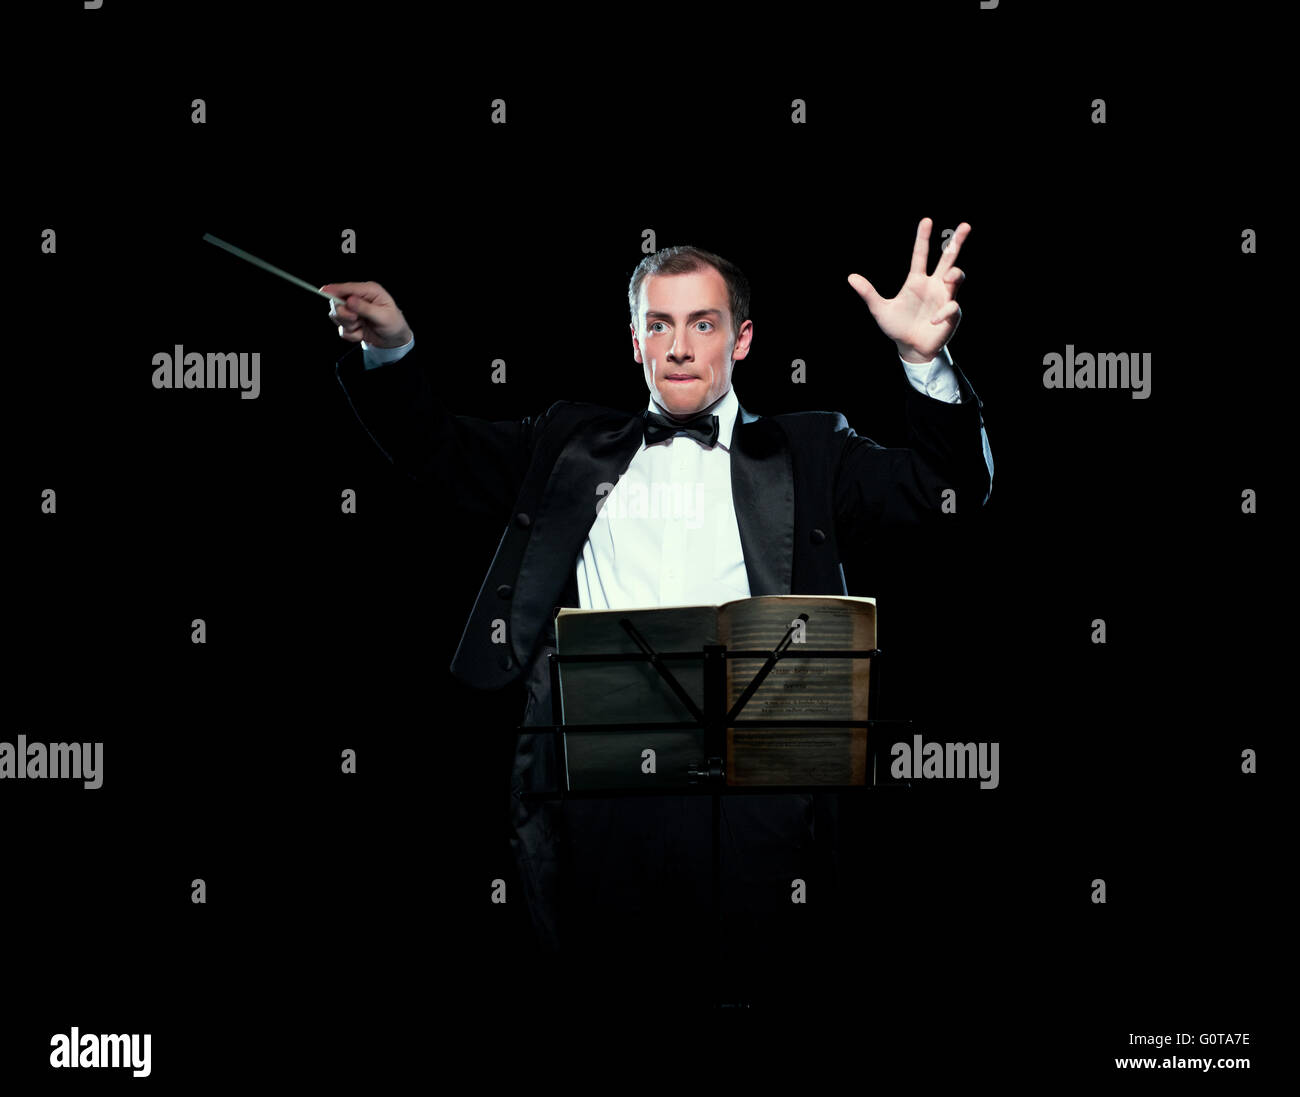 Shot of music director conducting with inspiration - Stock Image